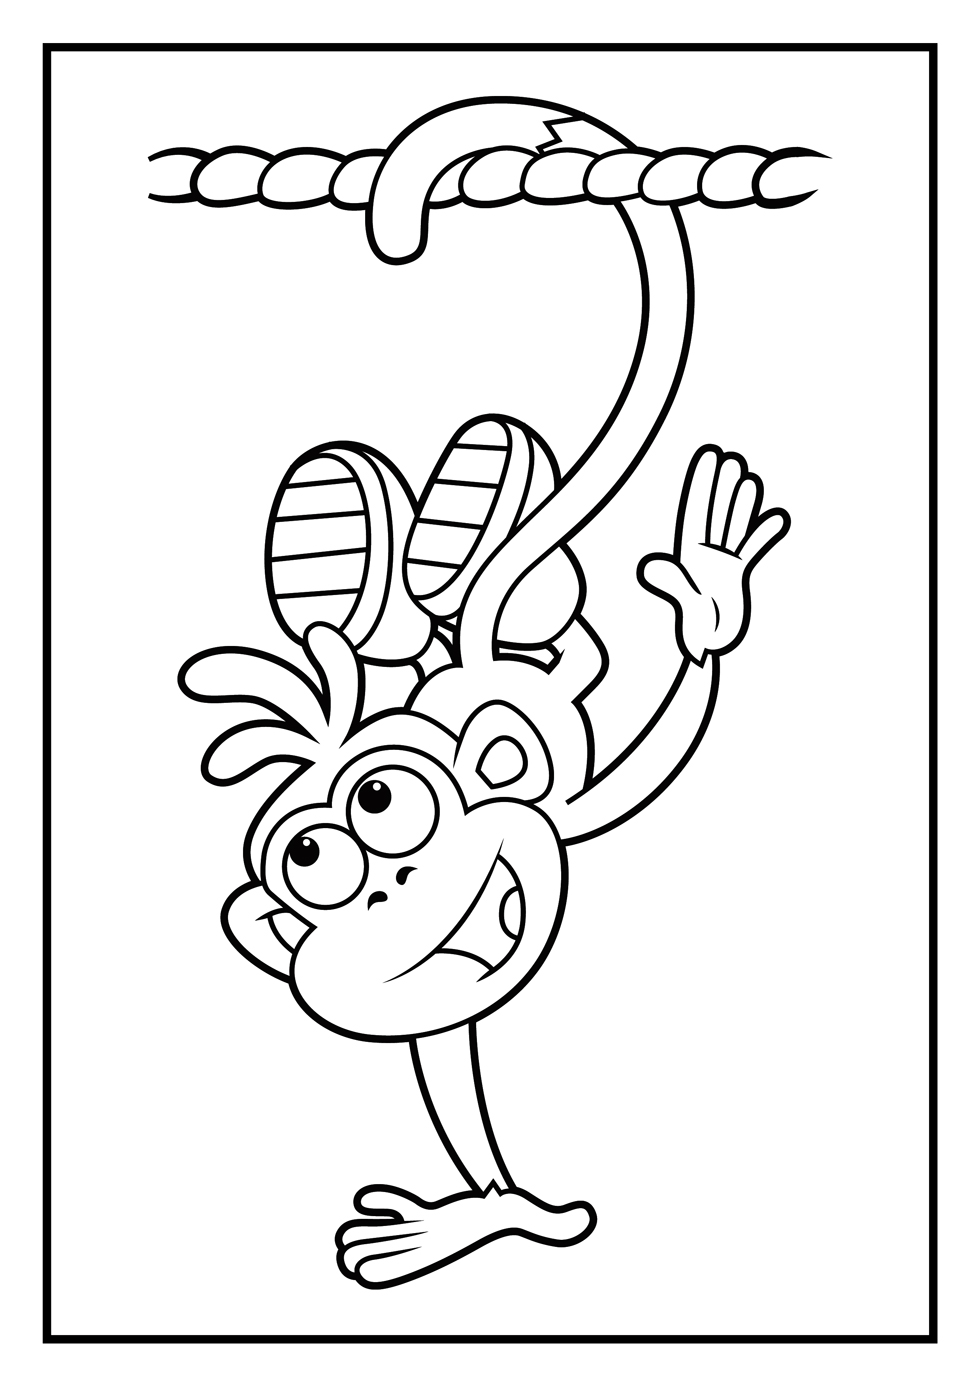 backpack colouring pages sketch coloring page